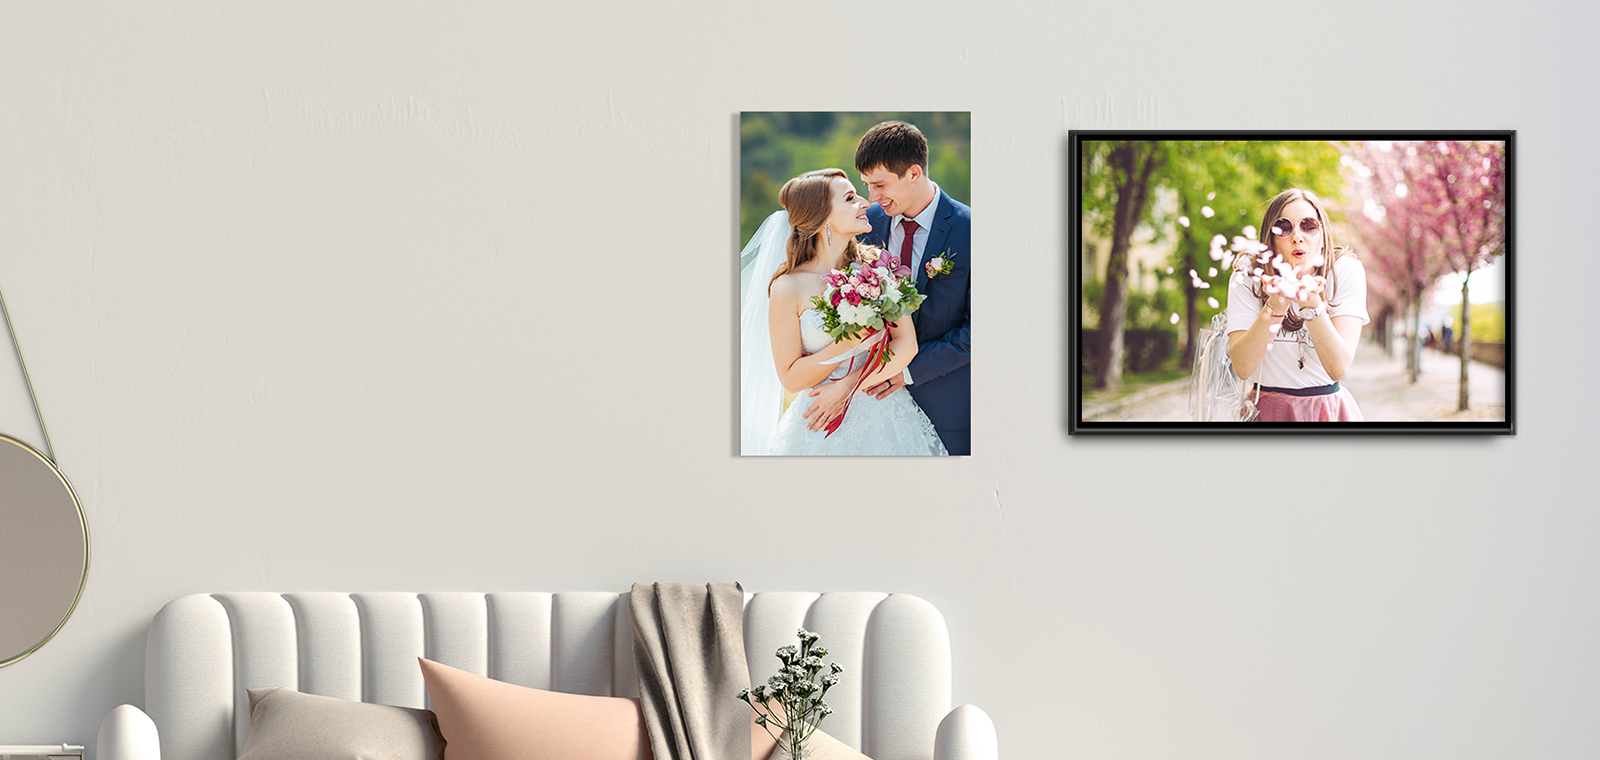 25 % off Select Wall Decors*